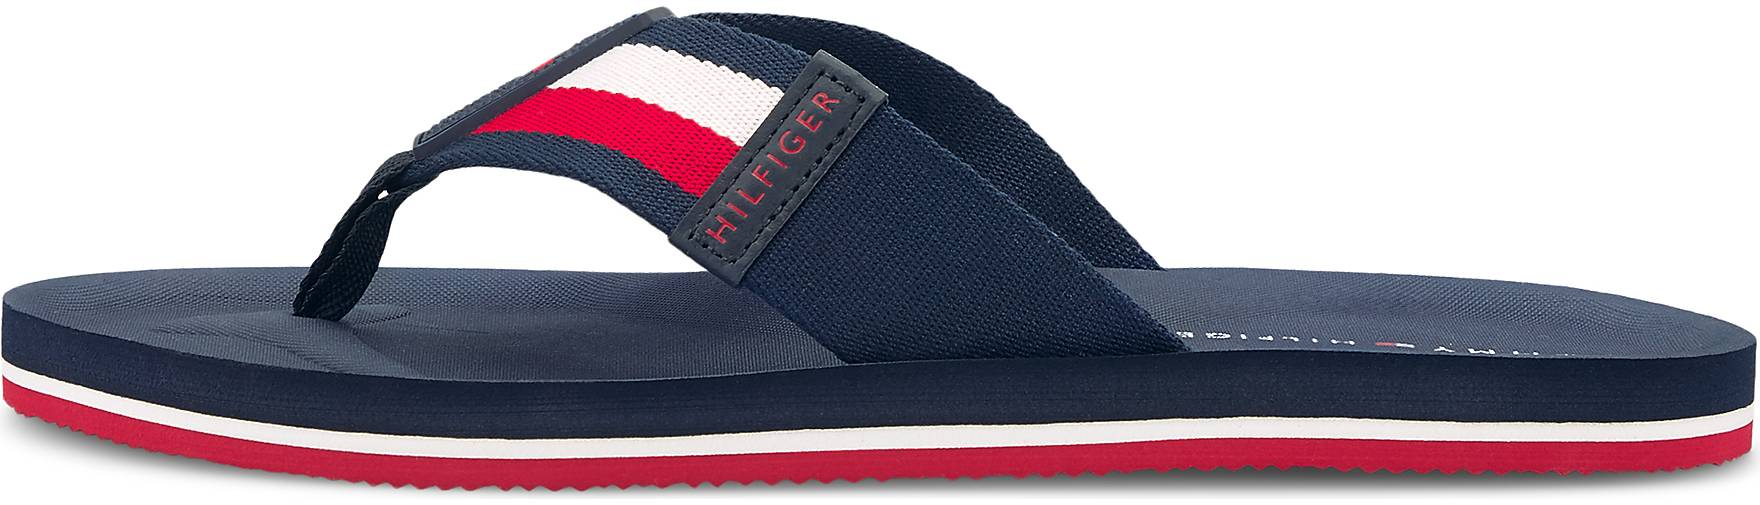 Tommy Hilfiger Zehentrenner SPORTY CORPORATE